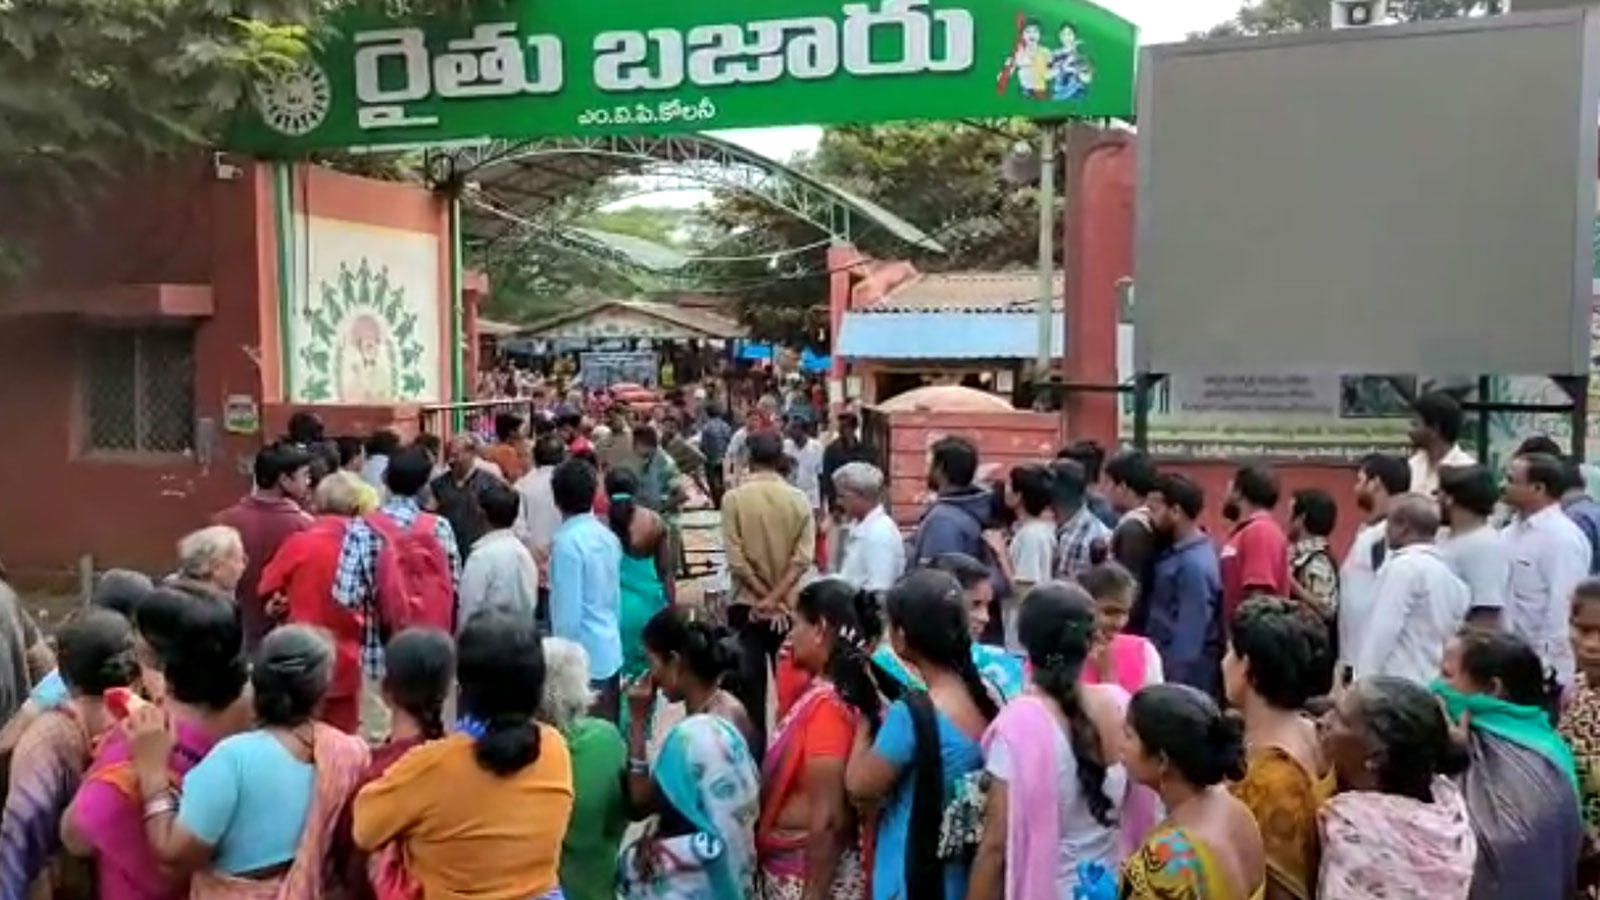 visakhapatnam-hundreds-queue-up-to-buy-subsidised-onion-at-rs-25-per-kg